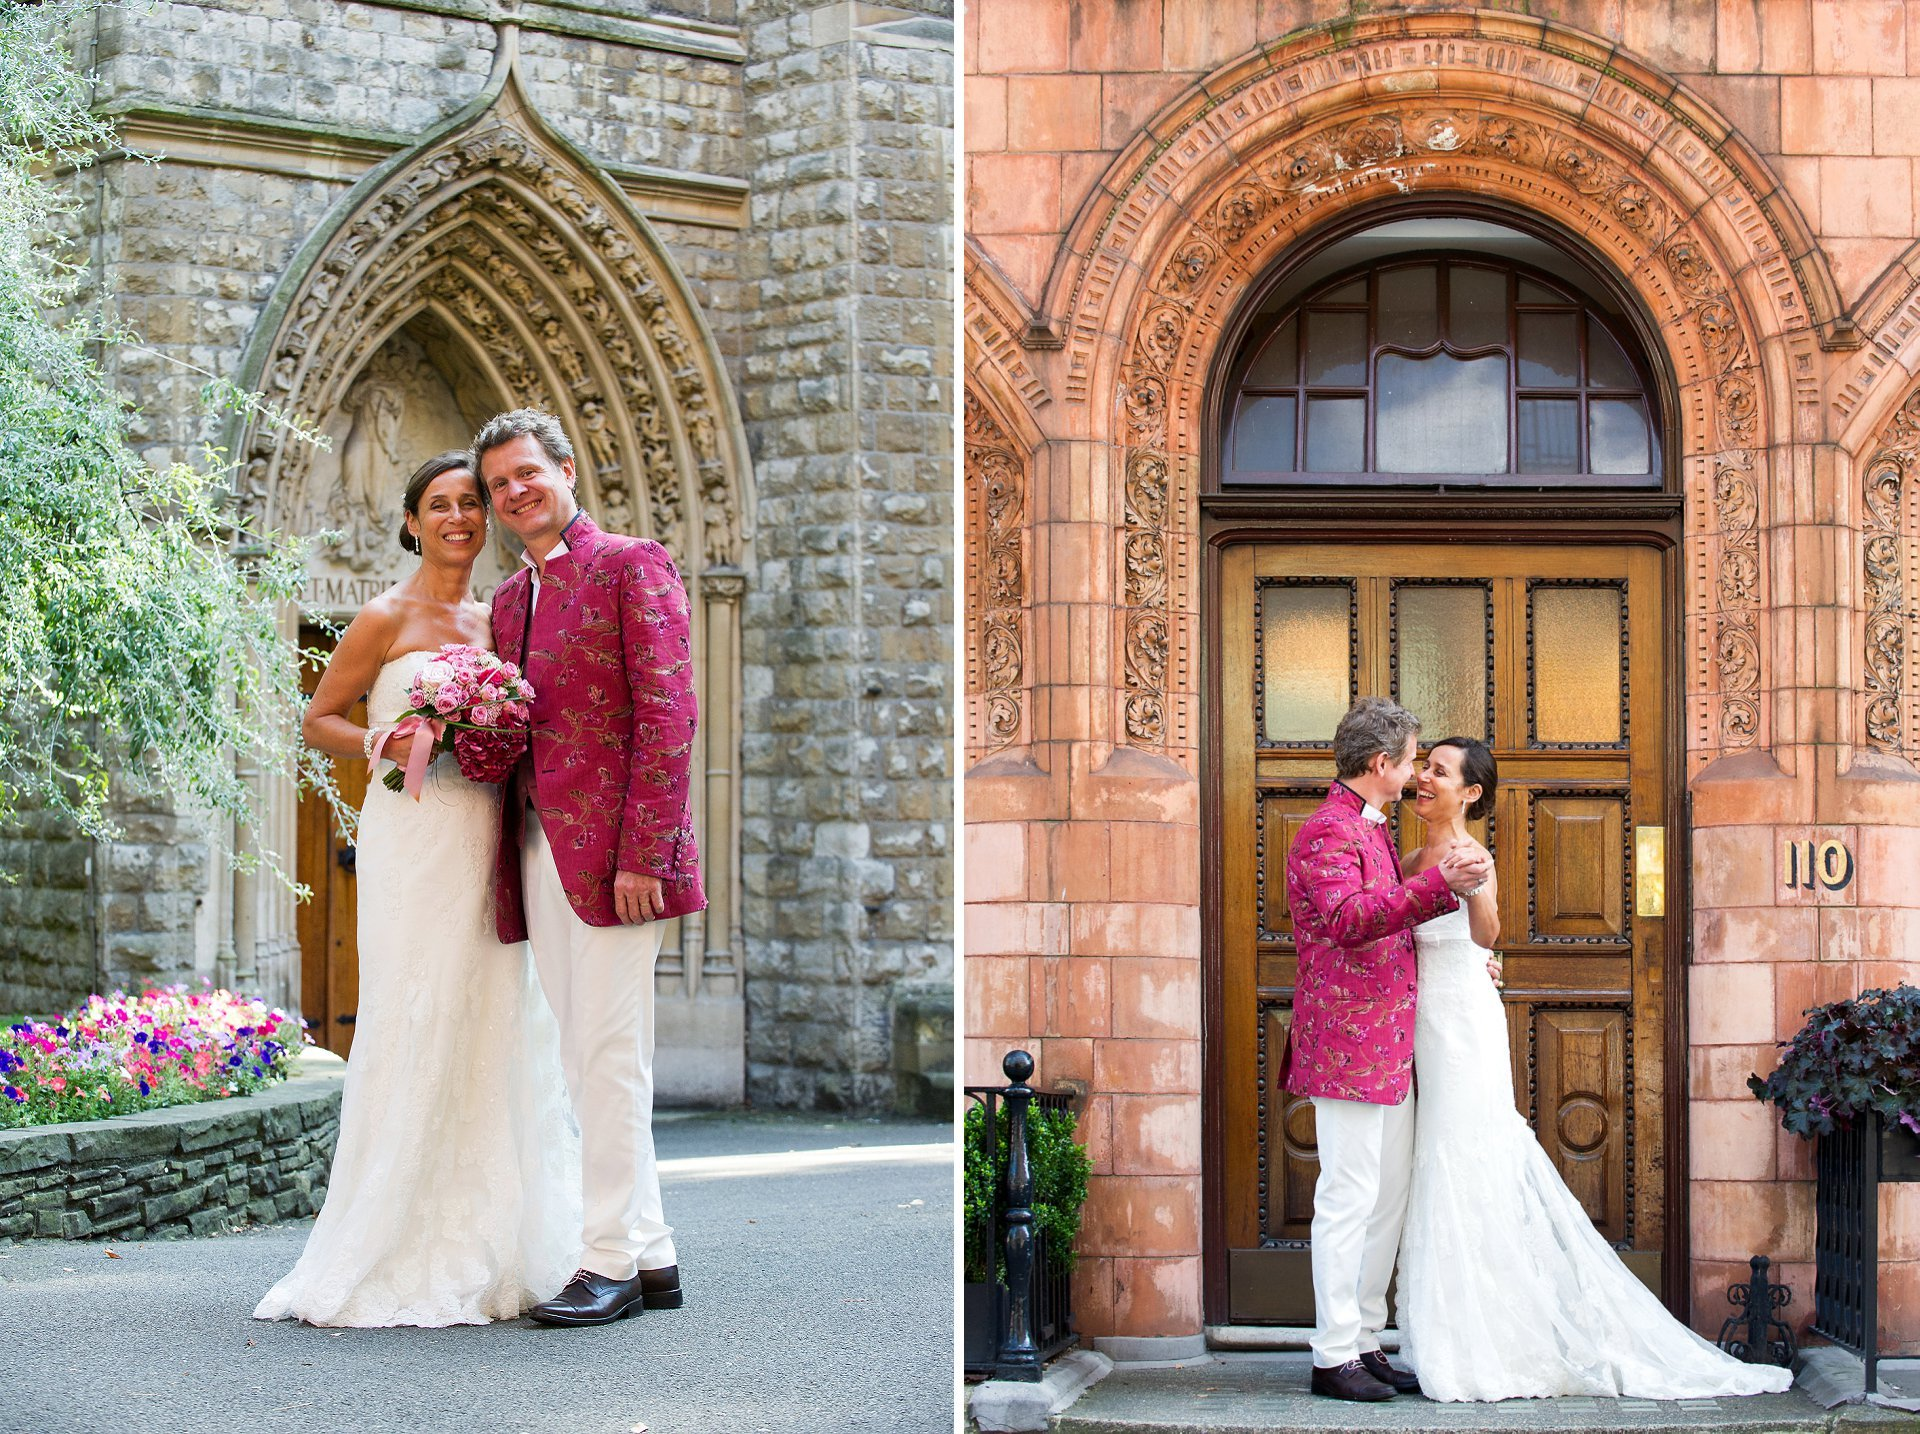 A bride and groom in Mount Street Gardens and on Mount Street after their Mayfair Library wedding